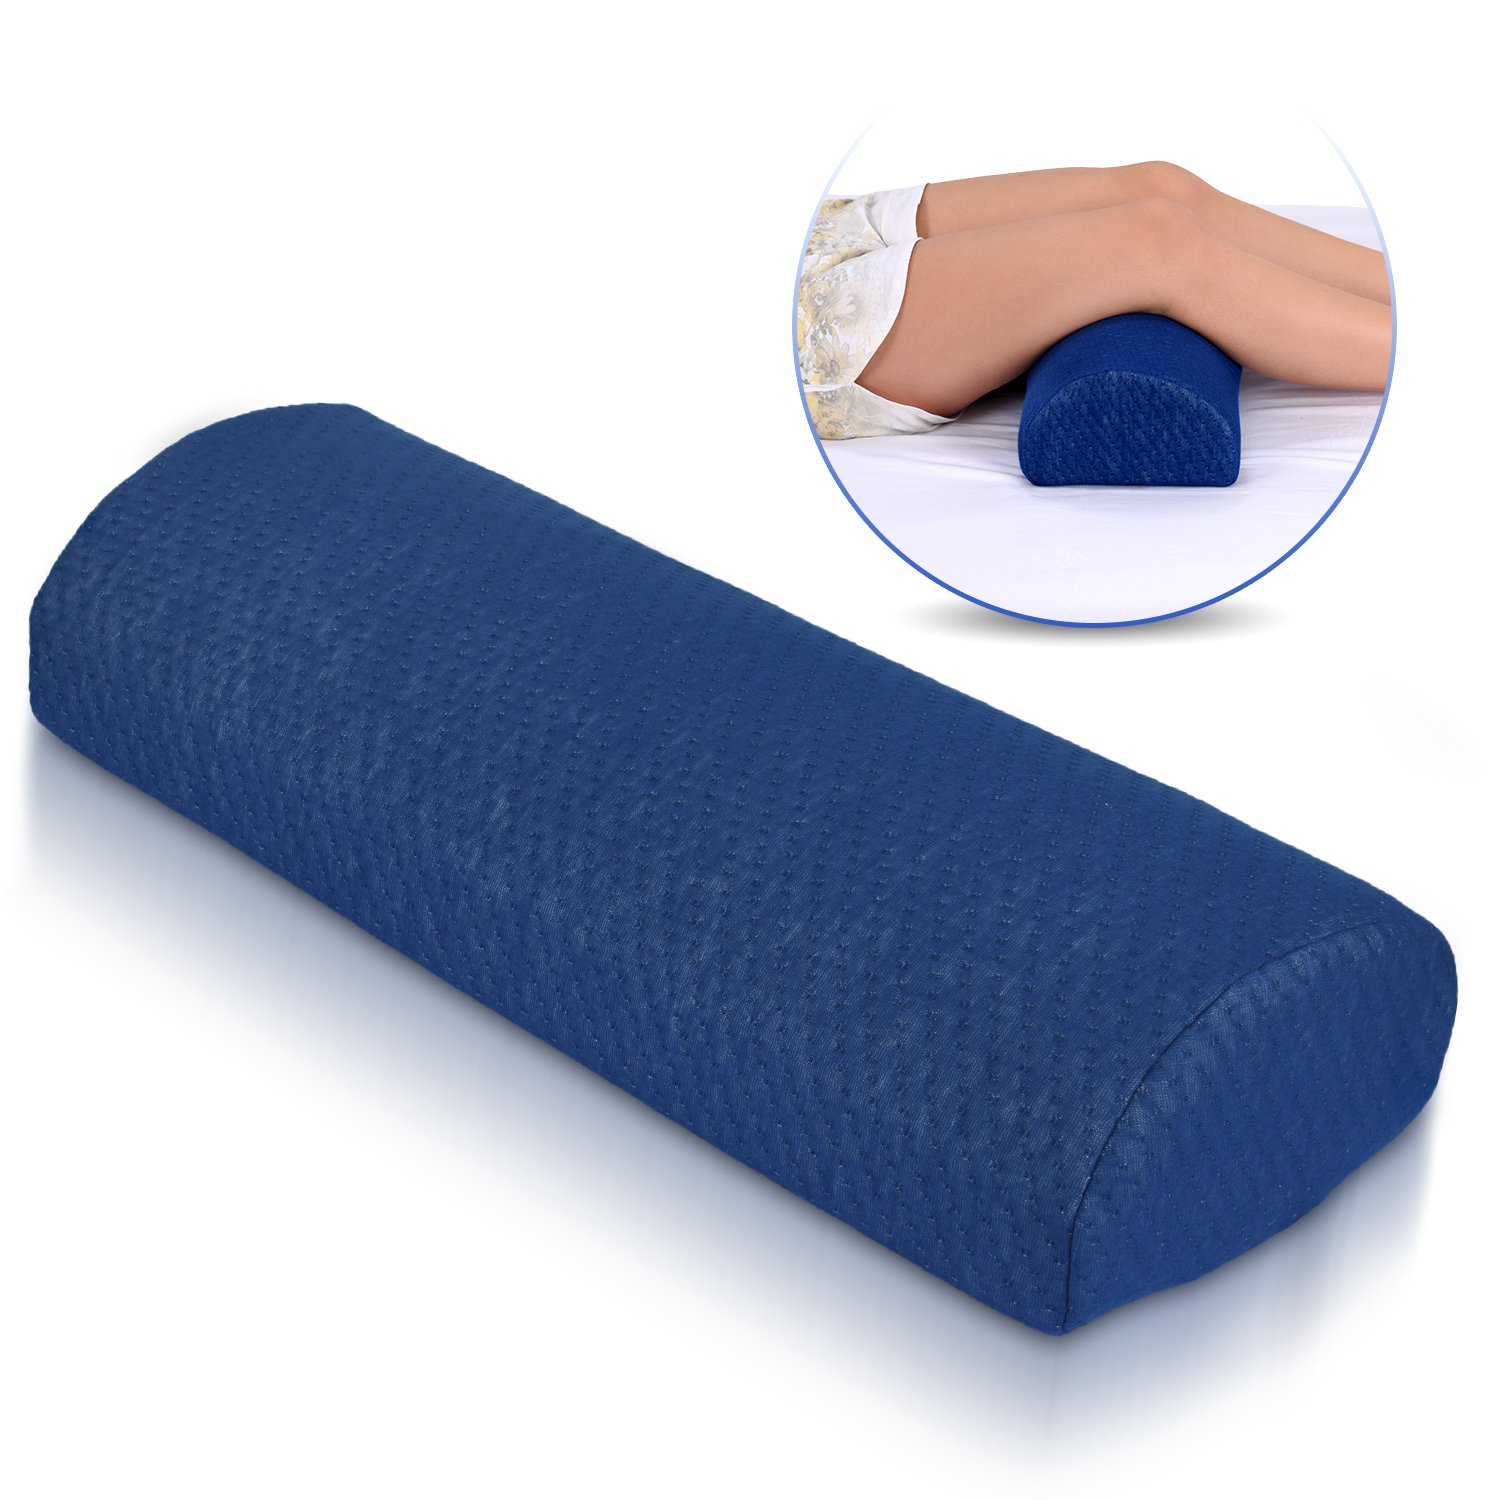 Ebung Half Moon Pillow – Ergonomic Knee Pillow for Post-Surgery, Sciatica, Varicose Veins, Pre/Post Pregnancy – Comfortable Sleeping Leg Pillow for Men & Women – Improved Blood Circulation